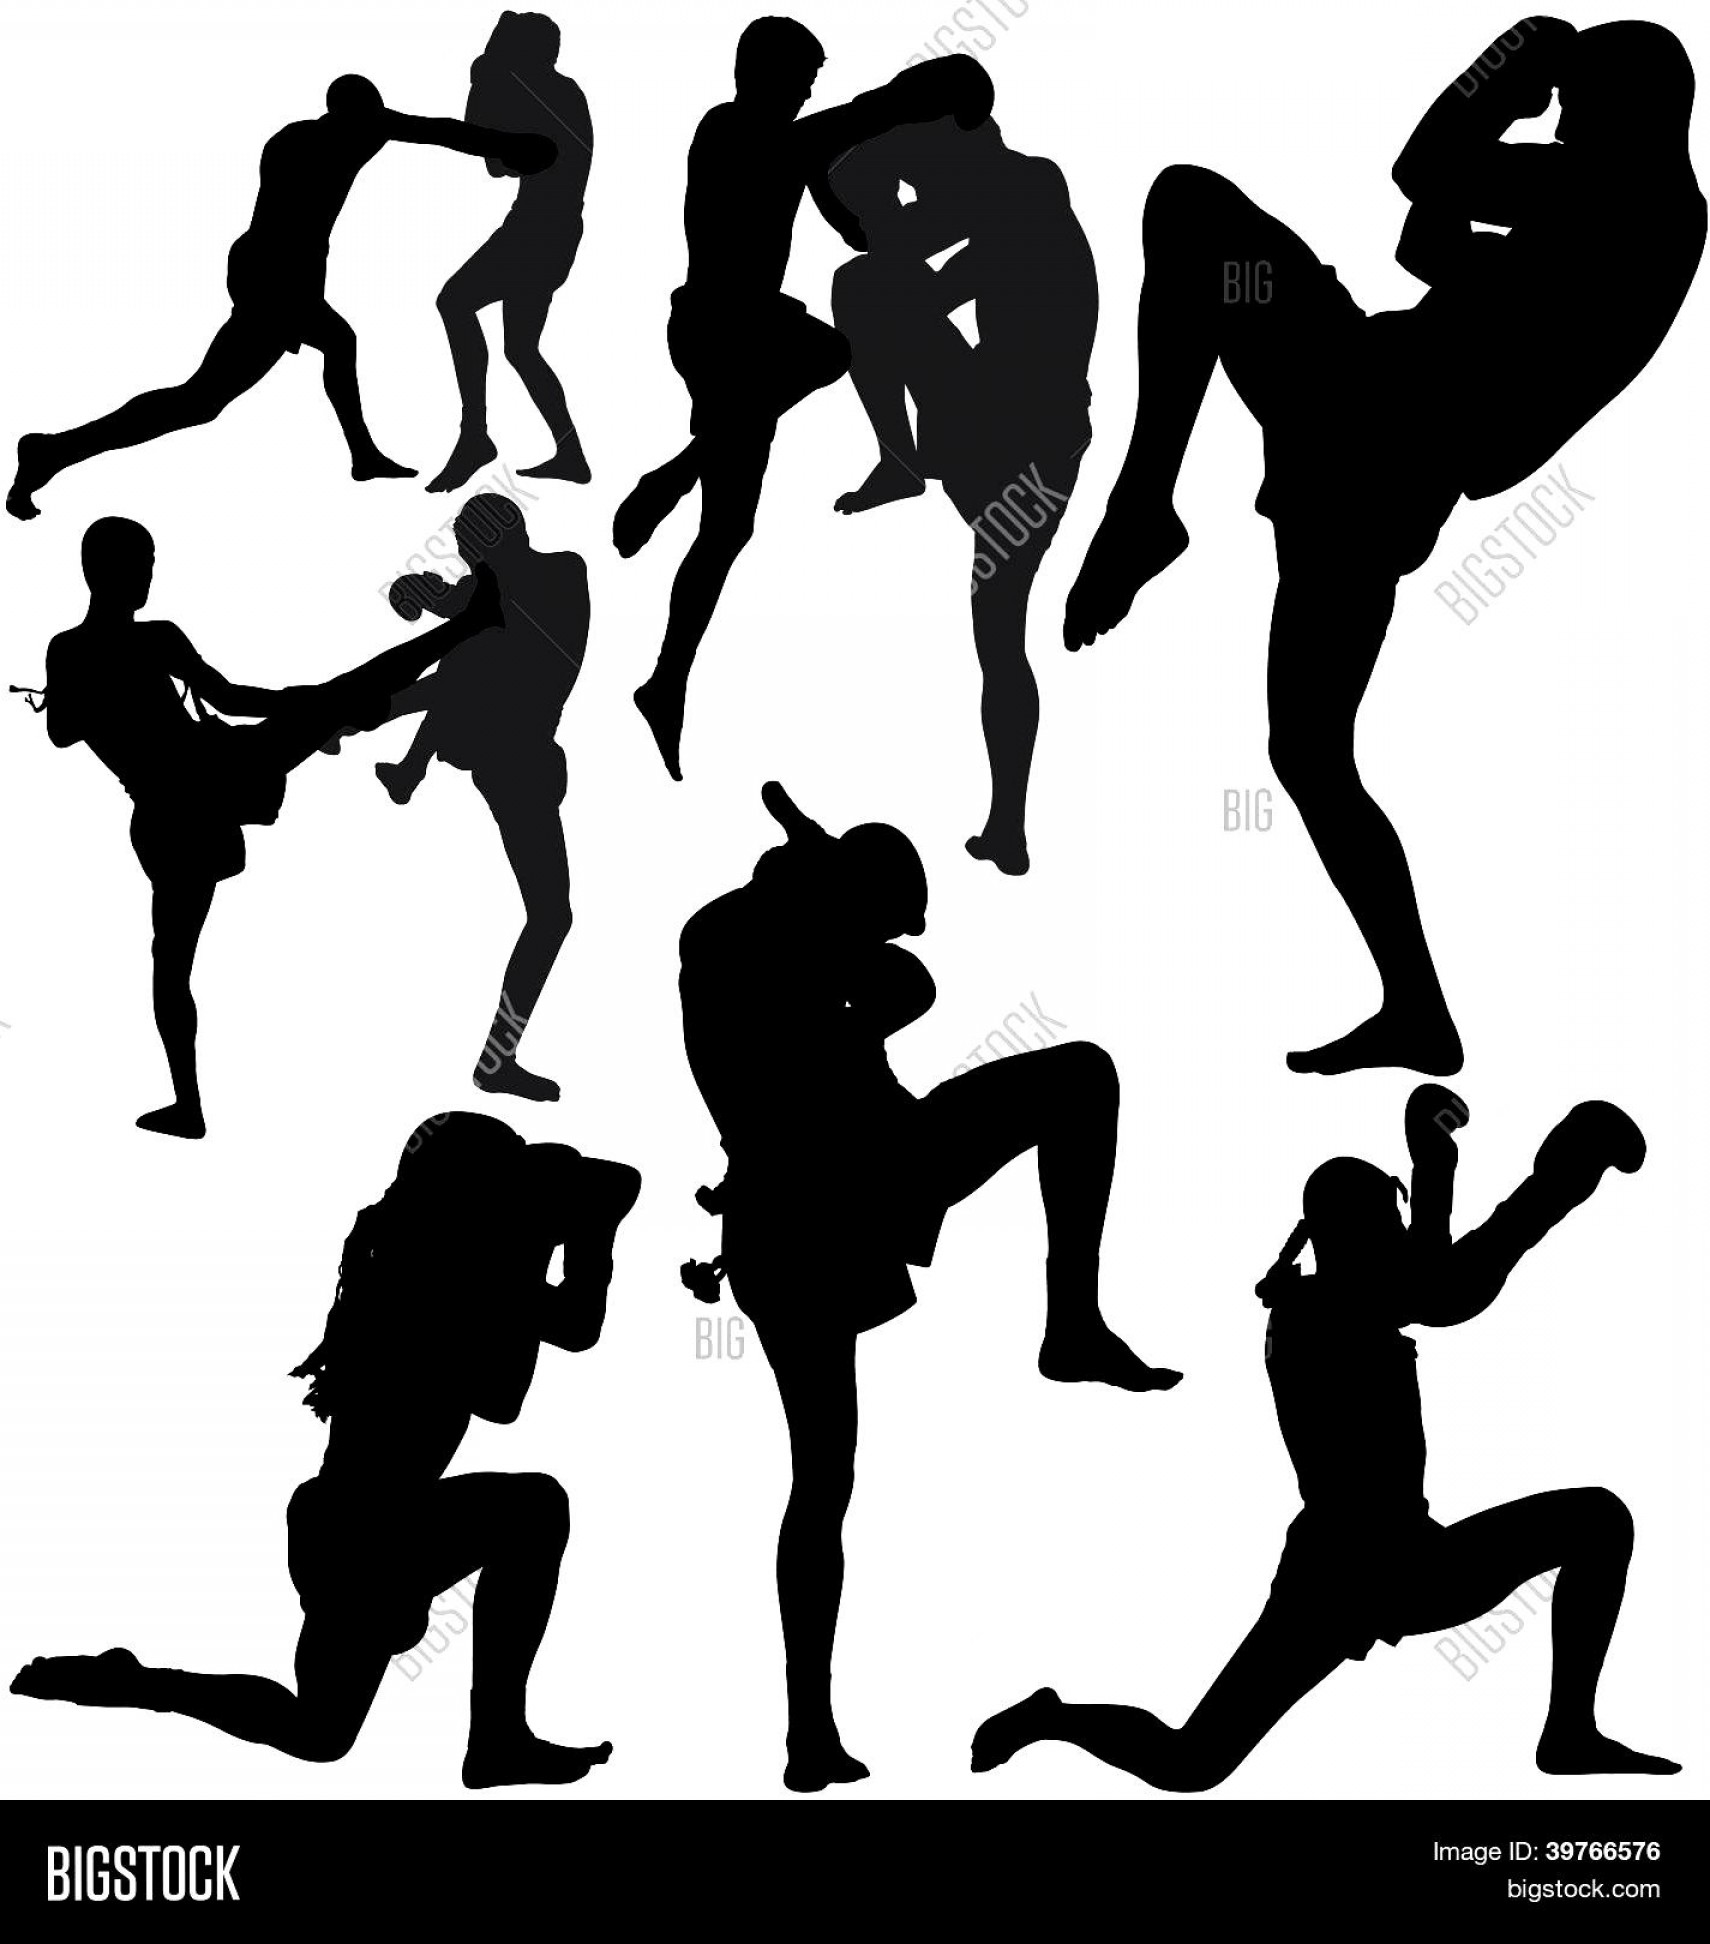 UFC Kick Vector: Muay Thai Thai Boxing Vector Silhouettes